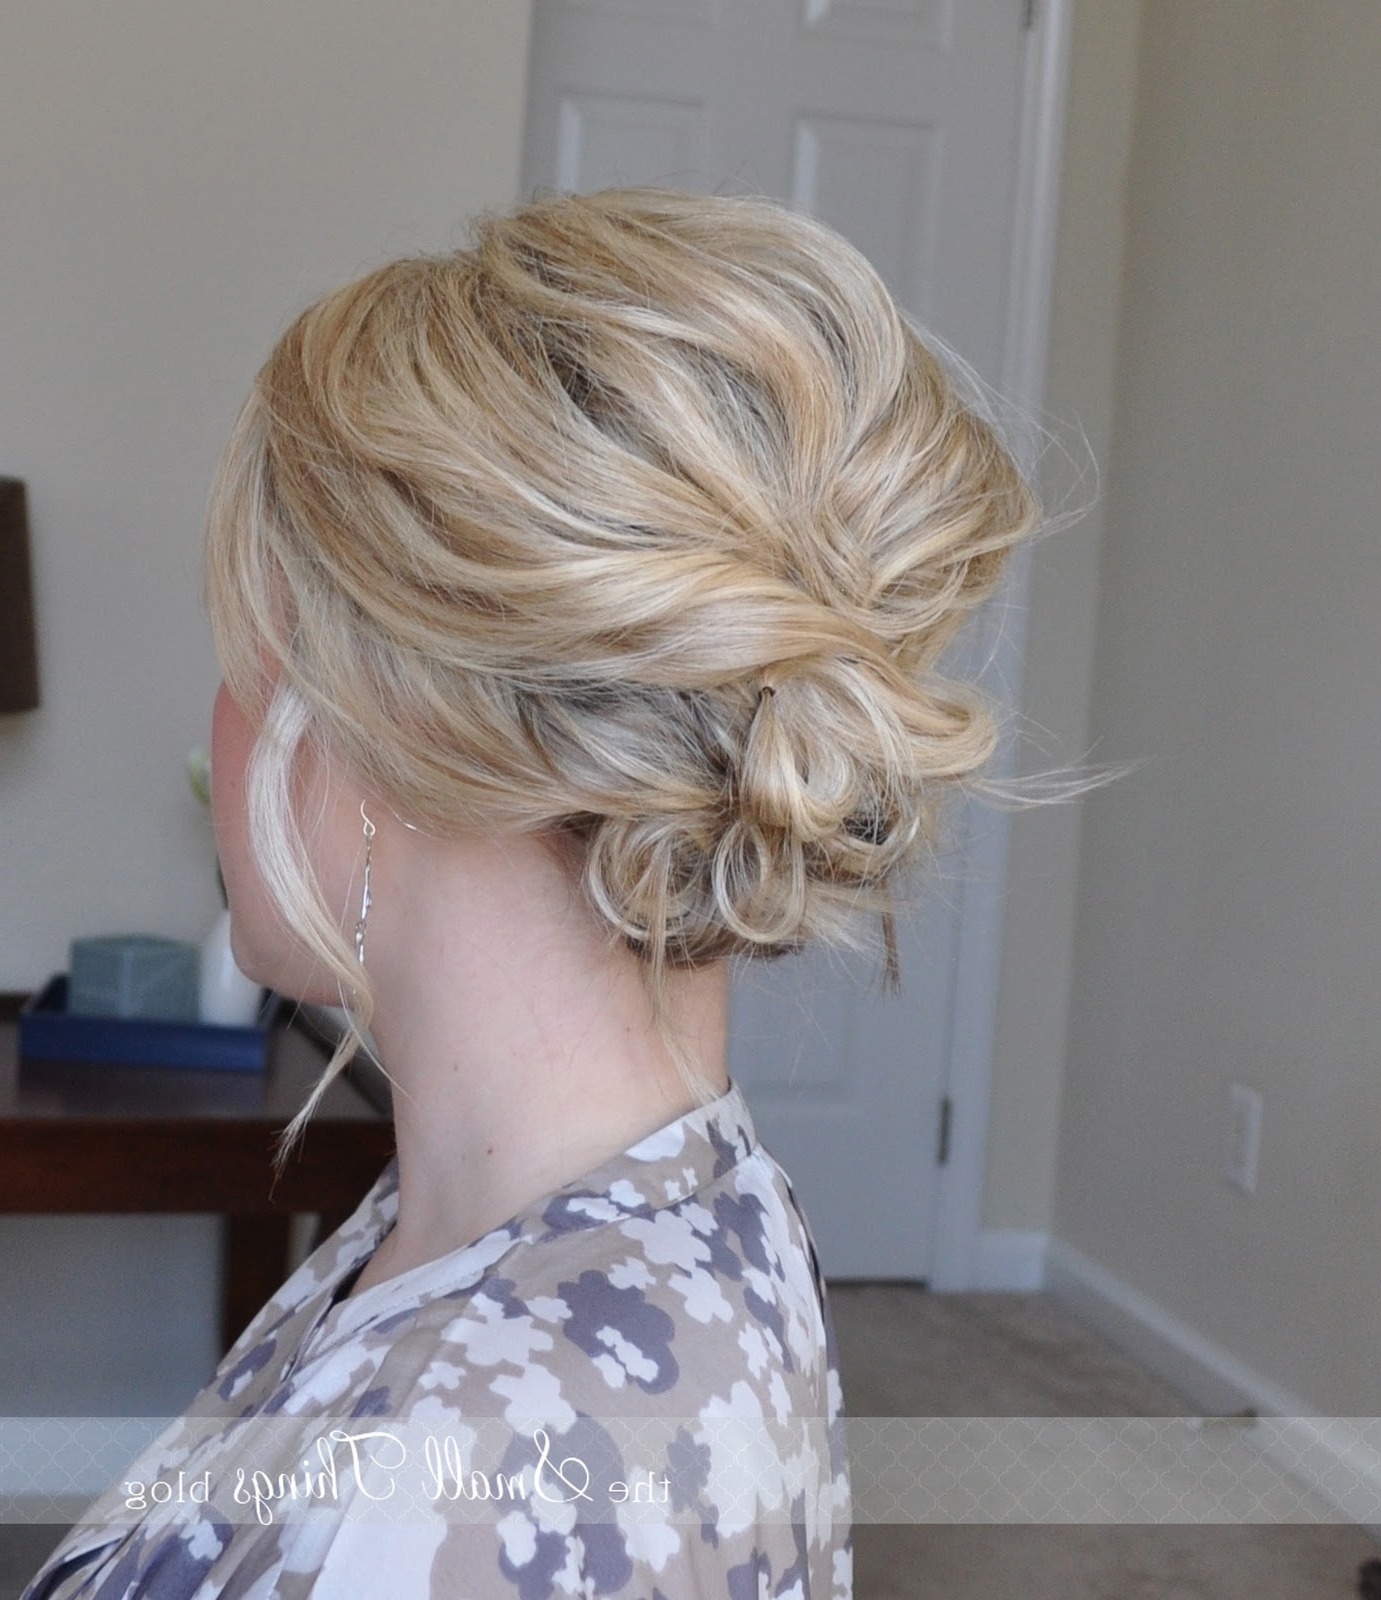 Latest Wedding Hairstyles For Mid Length Fine Hair In Beach Wedding Hairstyles For Medium Length Hair – Hairstyle For (View 2 of 15)